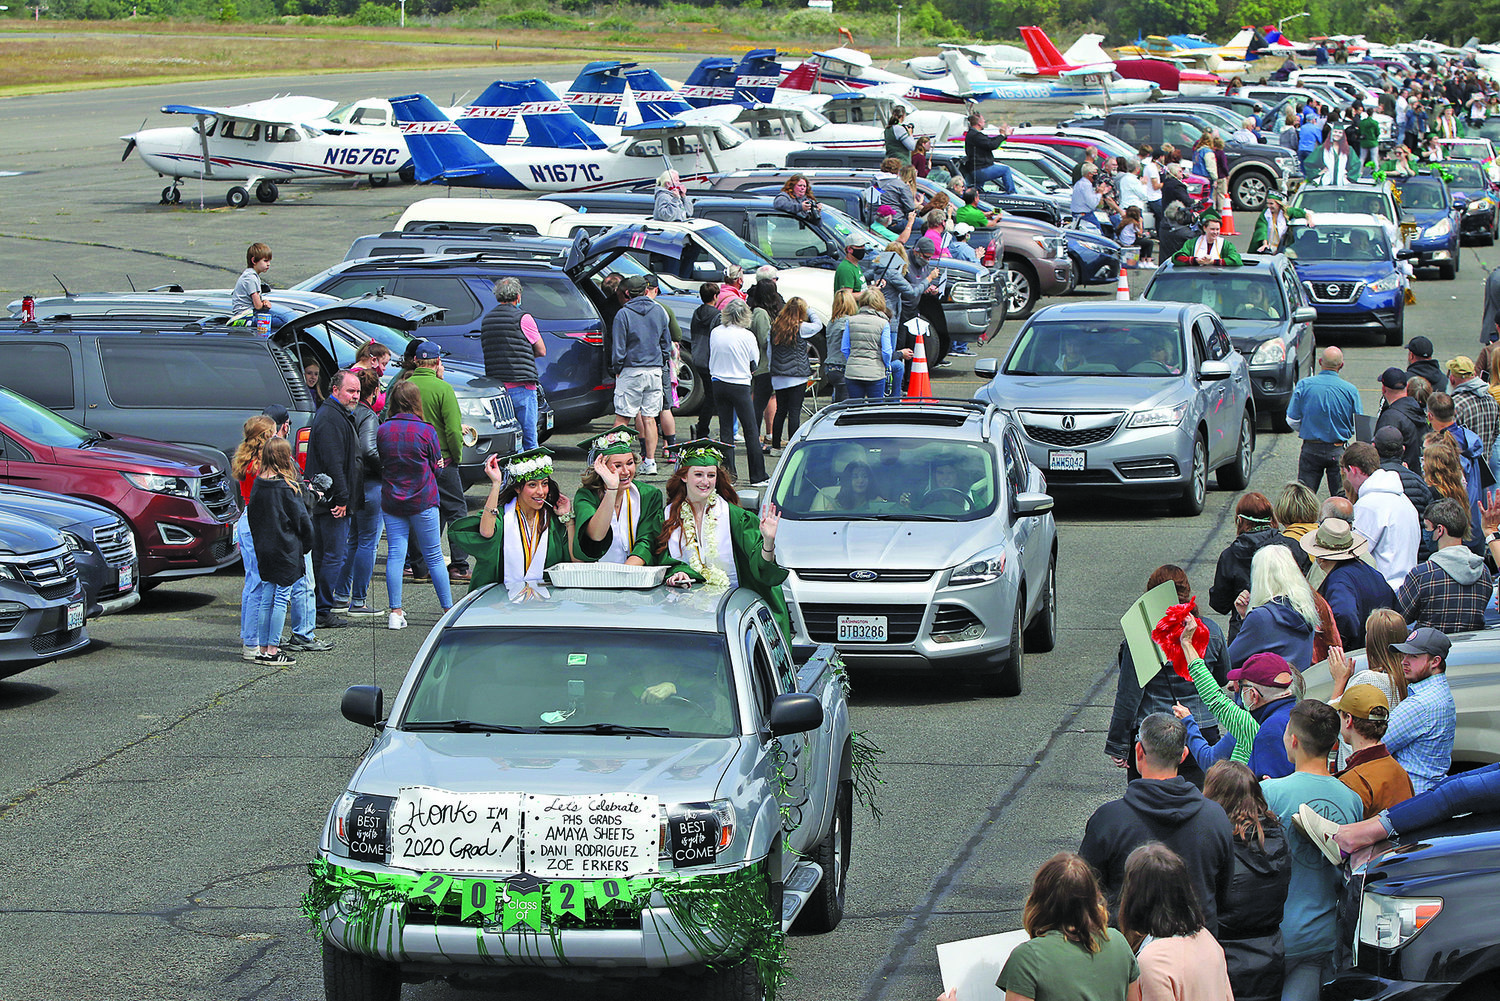 The Peninsula High School graduation parade at the Narrows Airport in Gig Harbor on Saturday, June13, 2020.